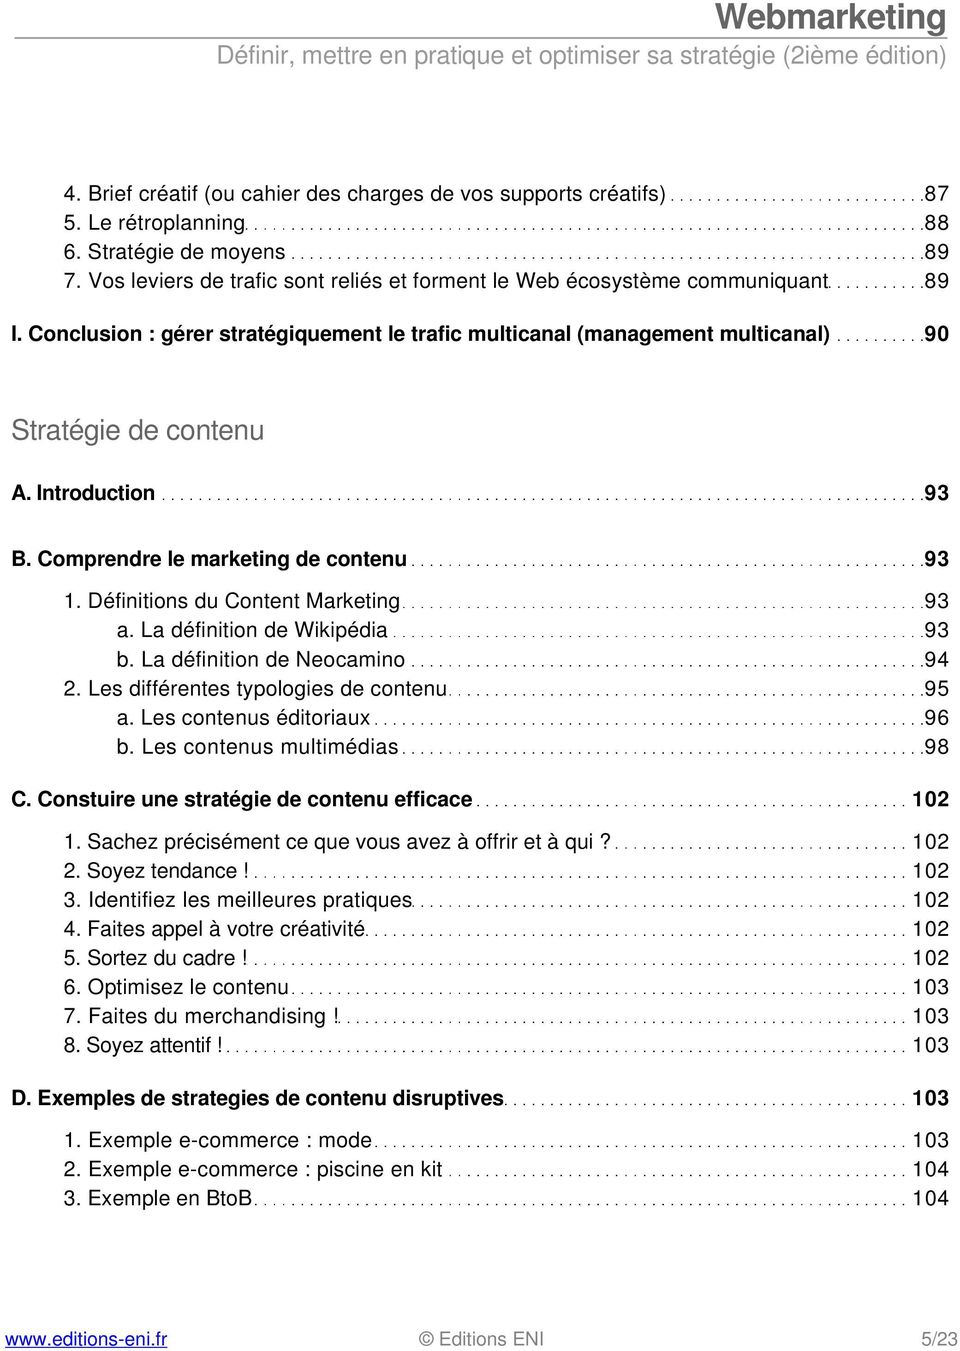 Introduction 93 B. Comprendre le marketing de contenu 93 1. Définitions du Content Marketing 93 a. La définition de Wikipédia 93 b. La définition de Neocamino 94 2.